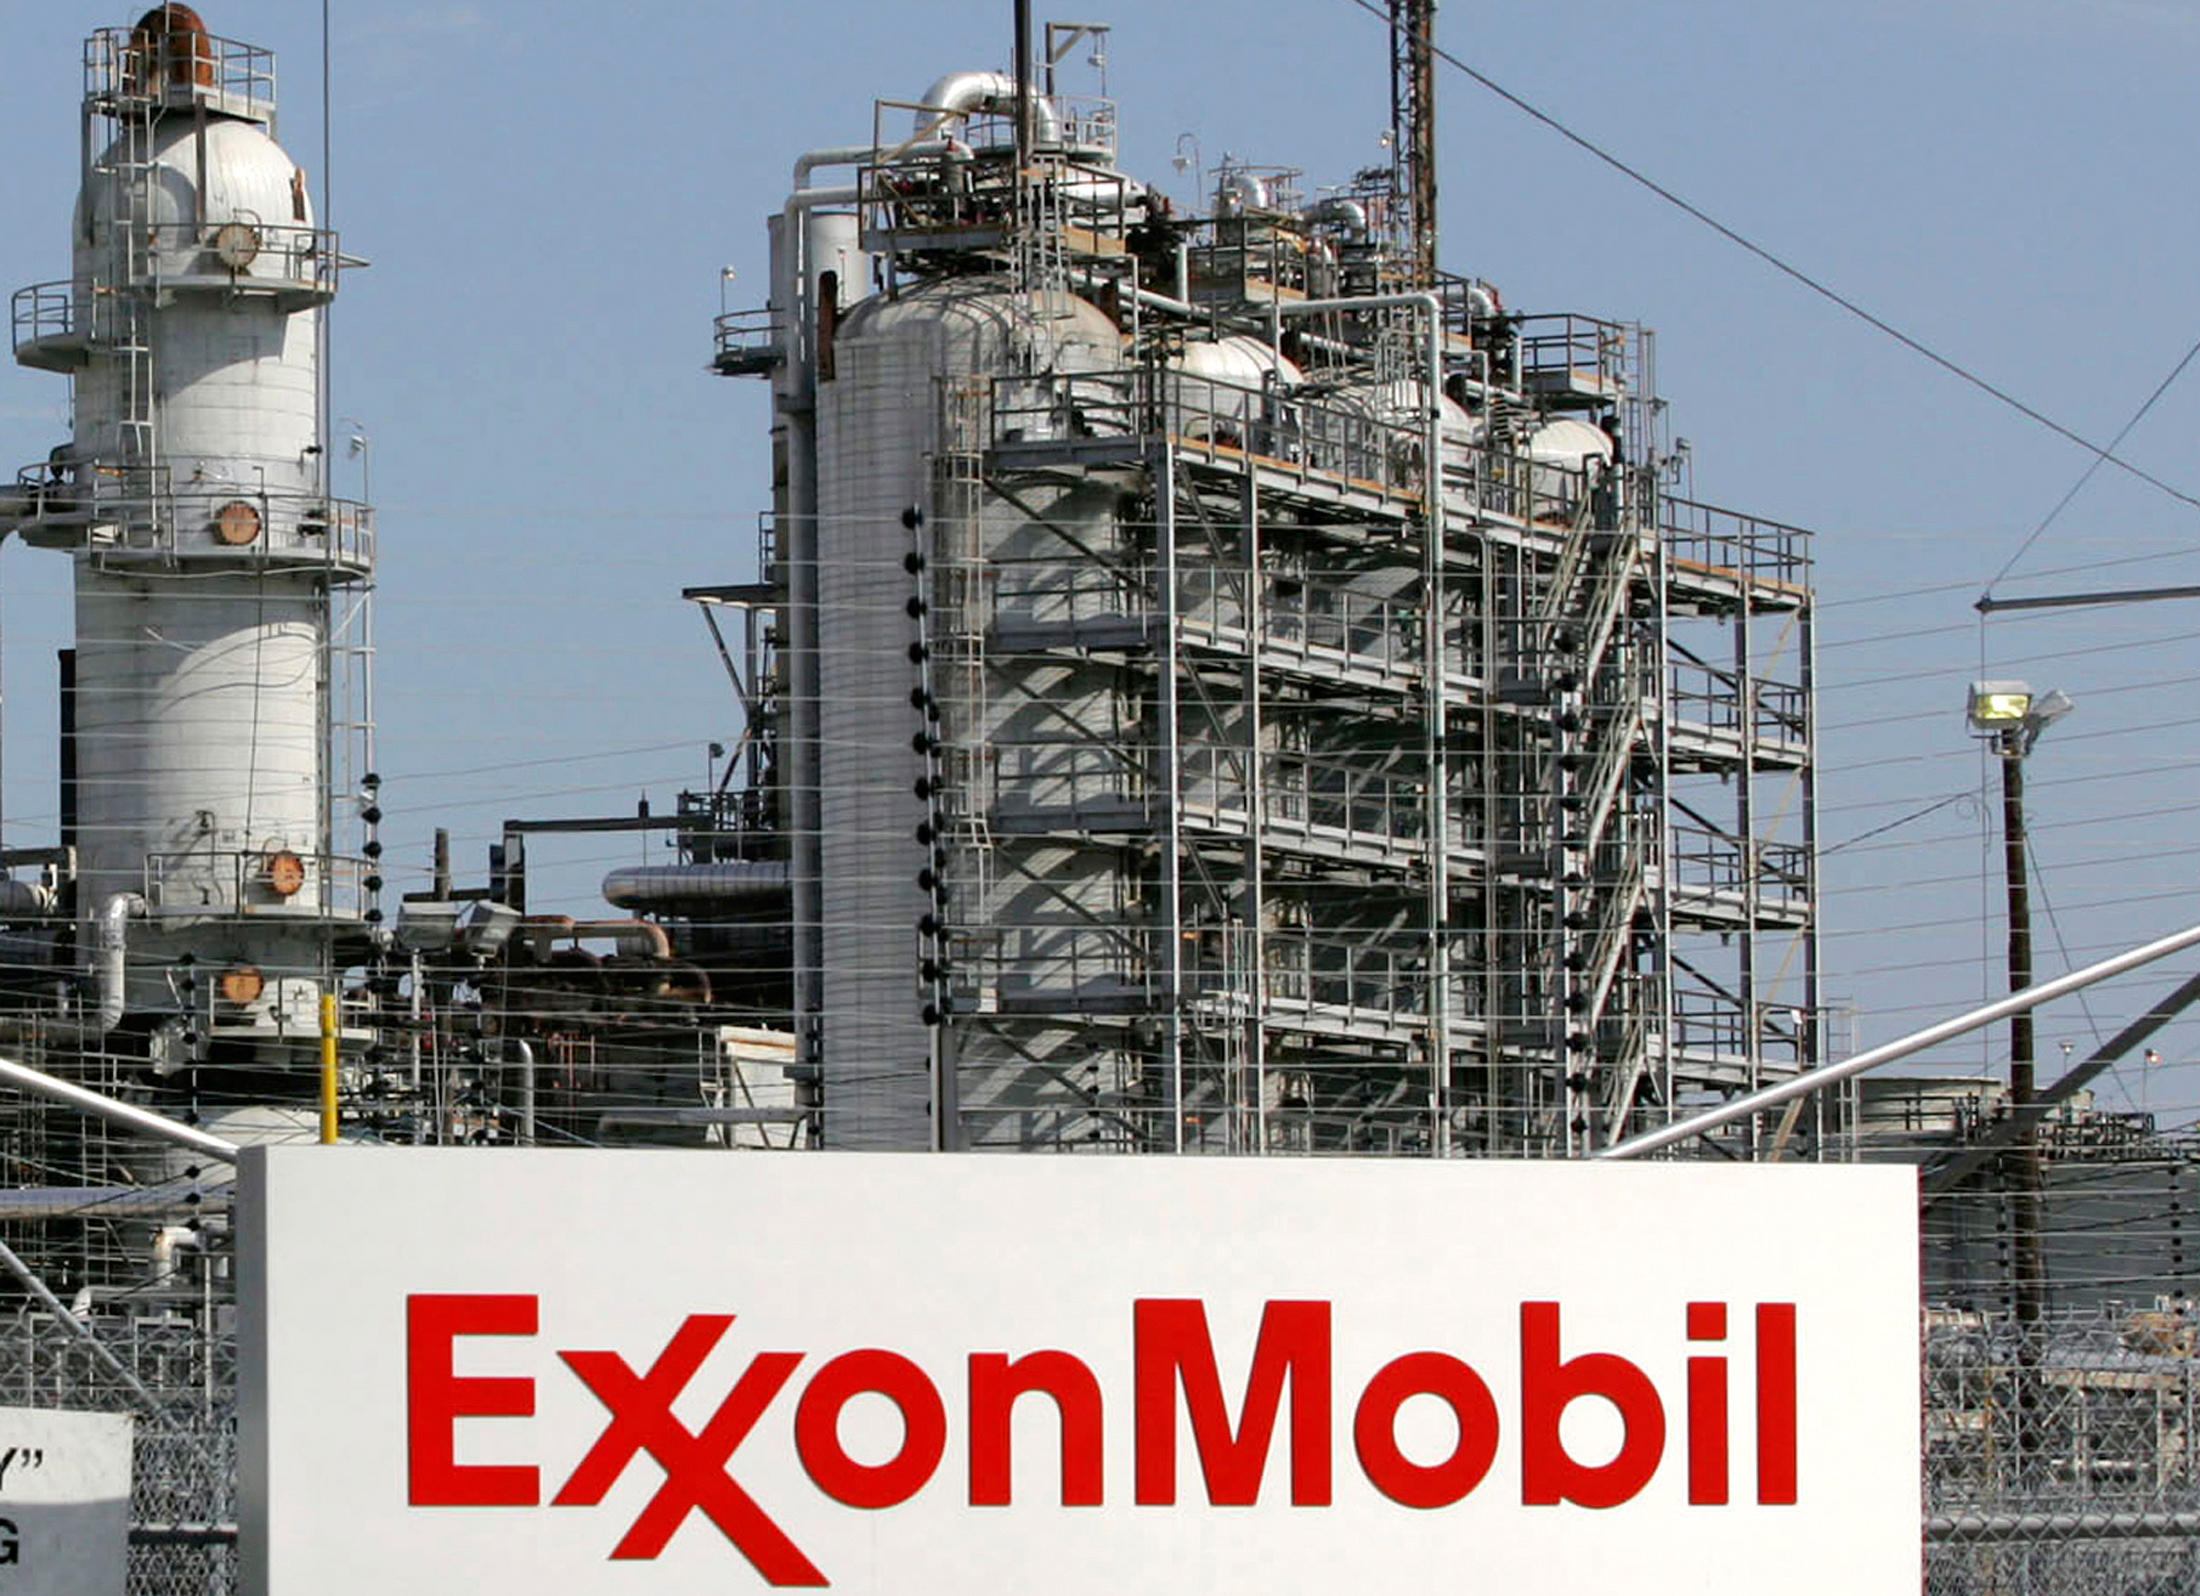 ExxonMobil sues administration to stop $2M fine over